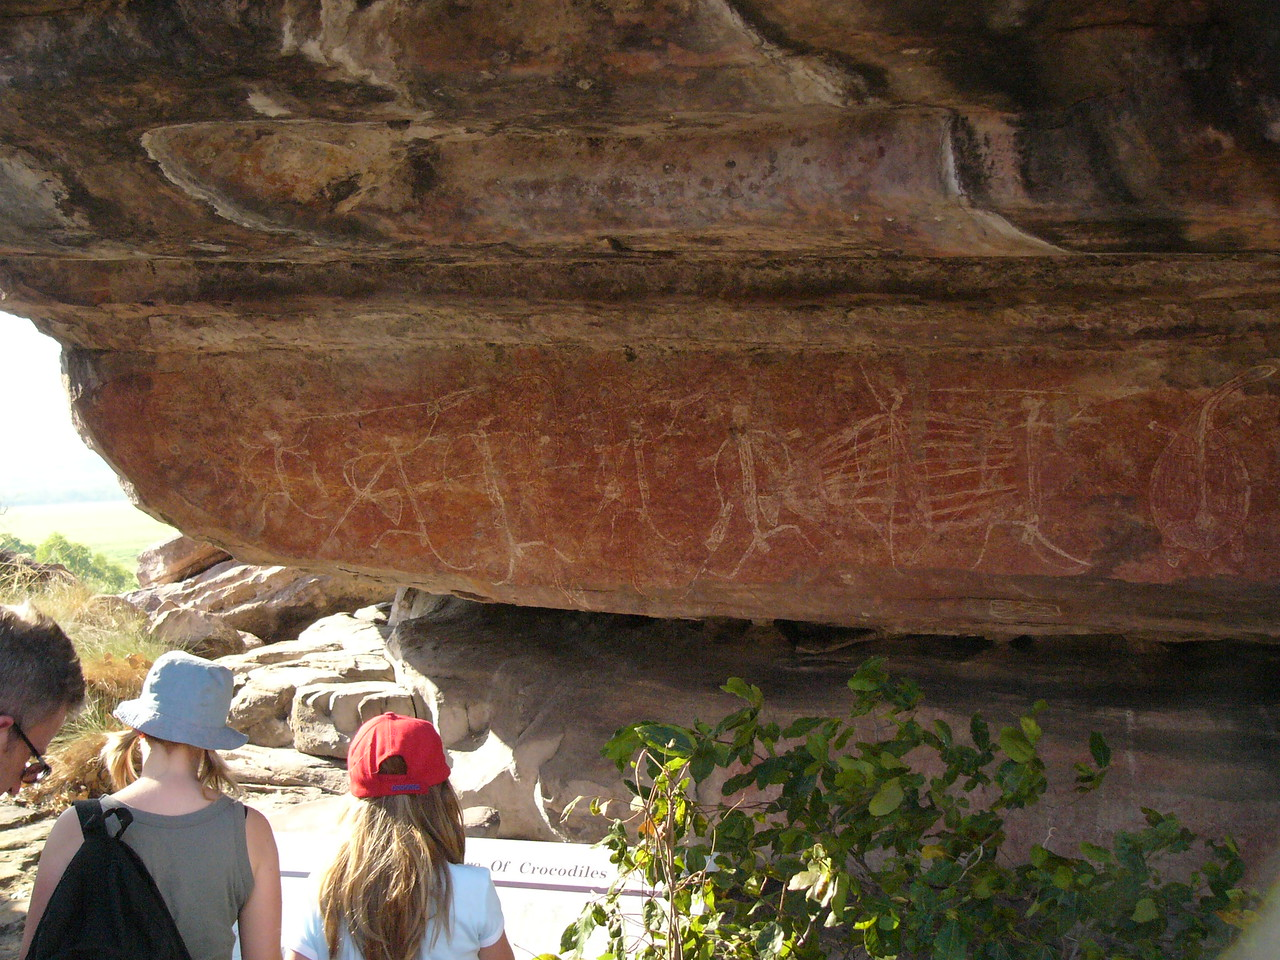 Aboriginal rock painting at Ubirr, Kakadu National Park. This rock painting depicts a 'dream-time' story of two sisters, the Namarkan sisters, who could turn into crocodiles (and back into humans) at will. They could then play tricks on people, scaring them out of their wits. Unfortunately, they then stayed crocodiles. Their spirit is in each crocodile, giving the crocodiles a mischievous glint in their eyes. Their spirits can also reach into people with something like strings, causing illness.